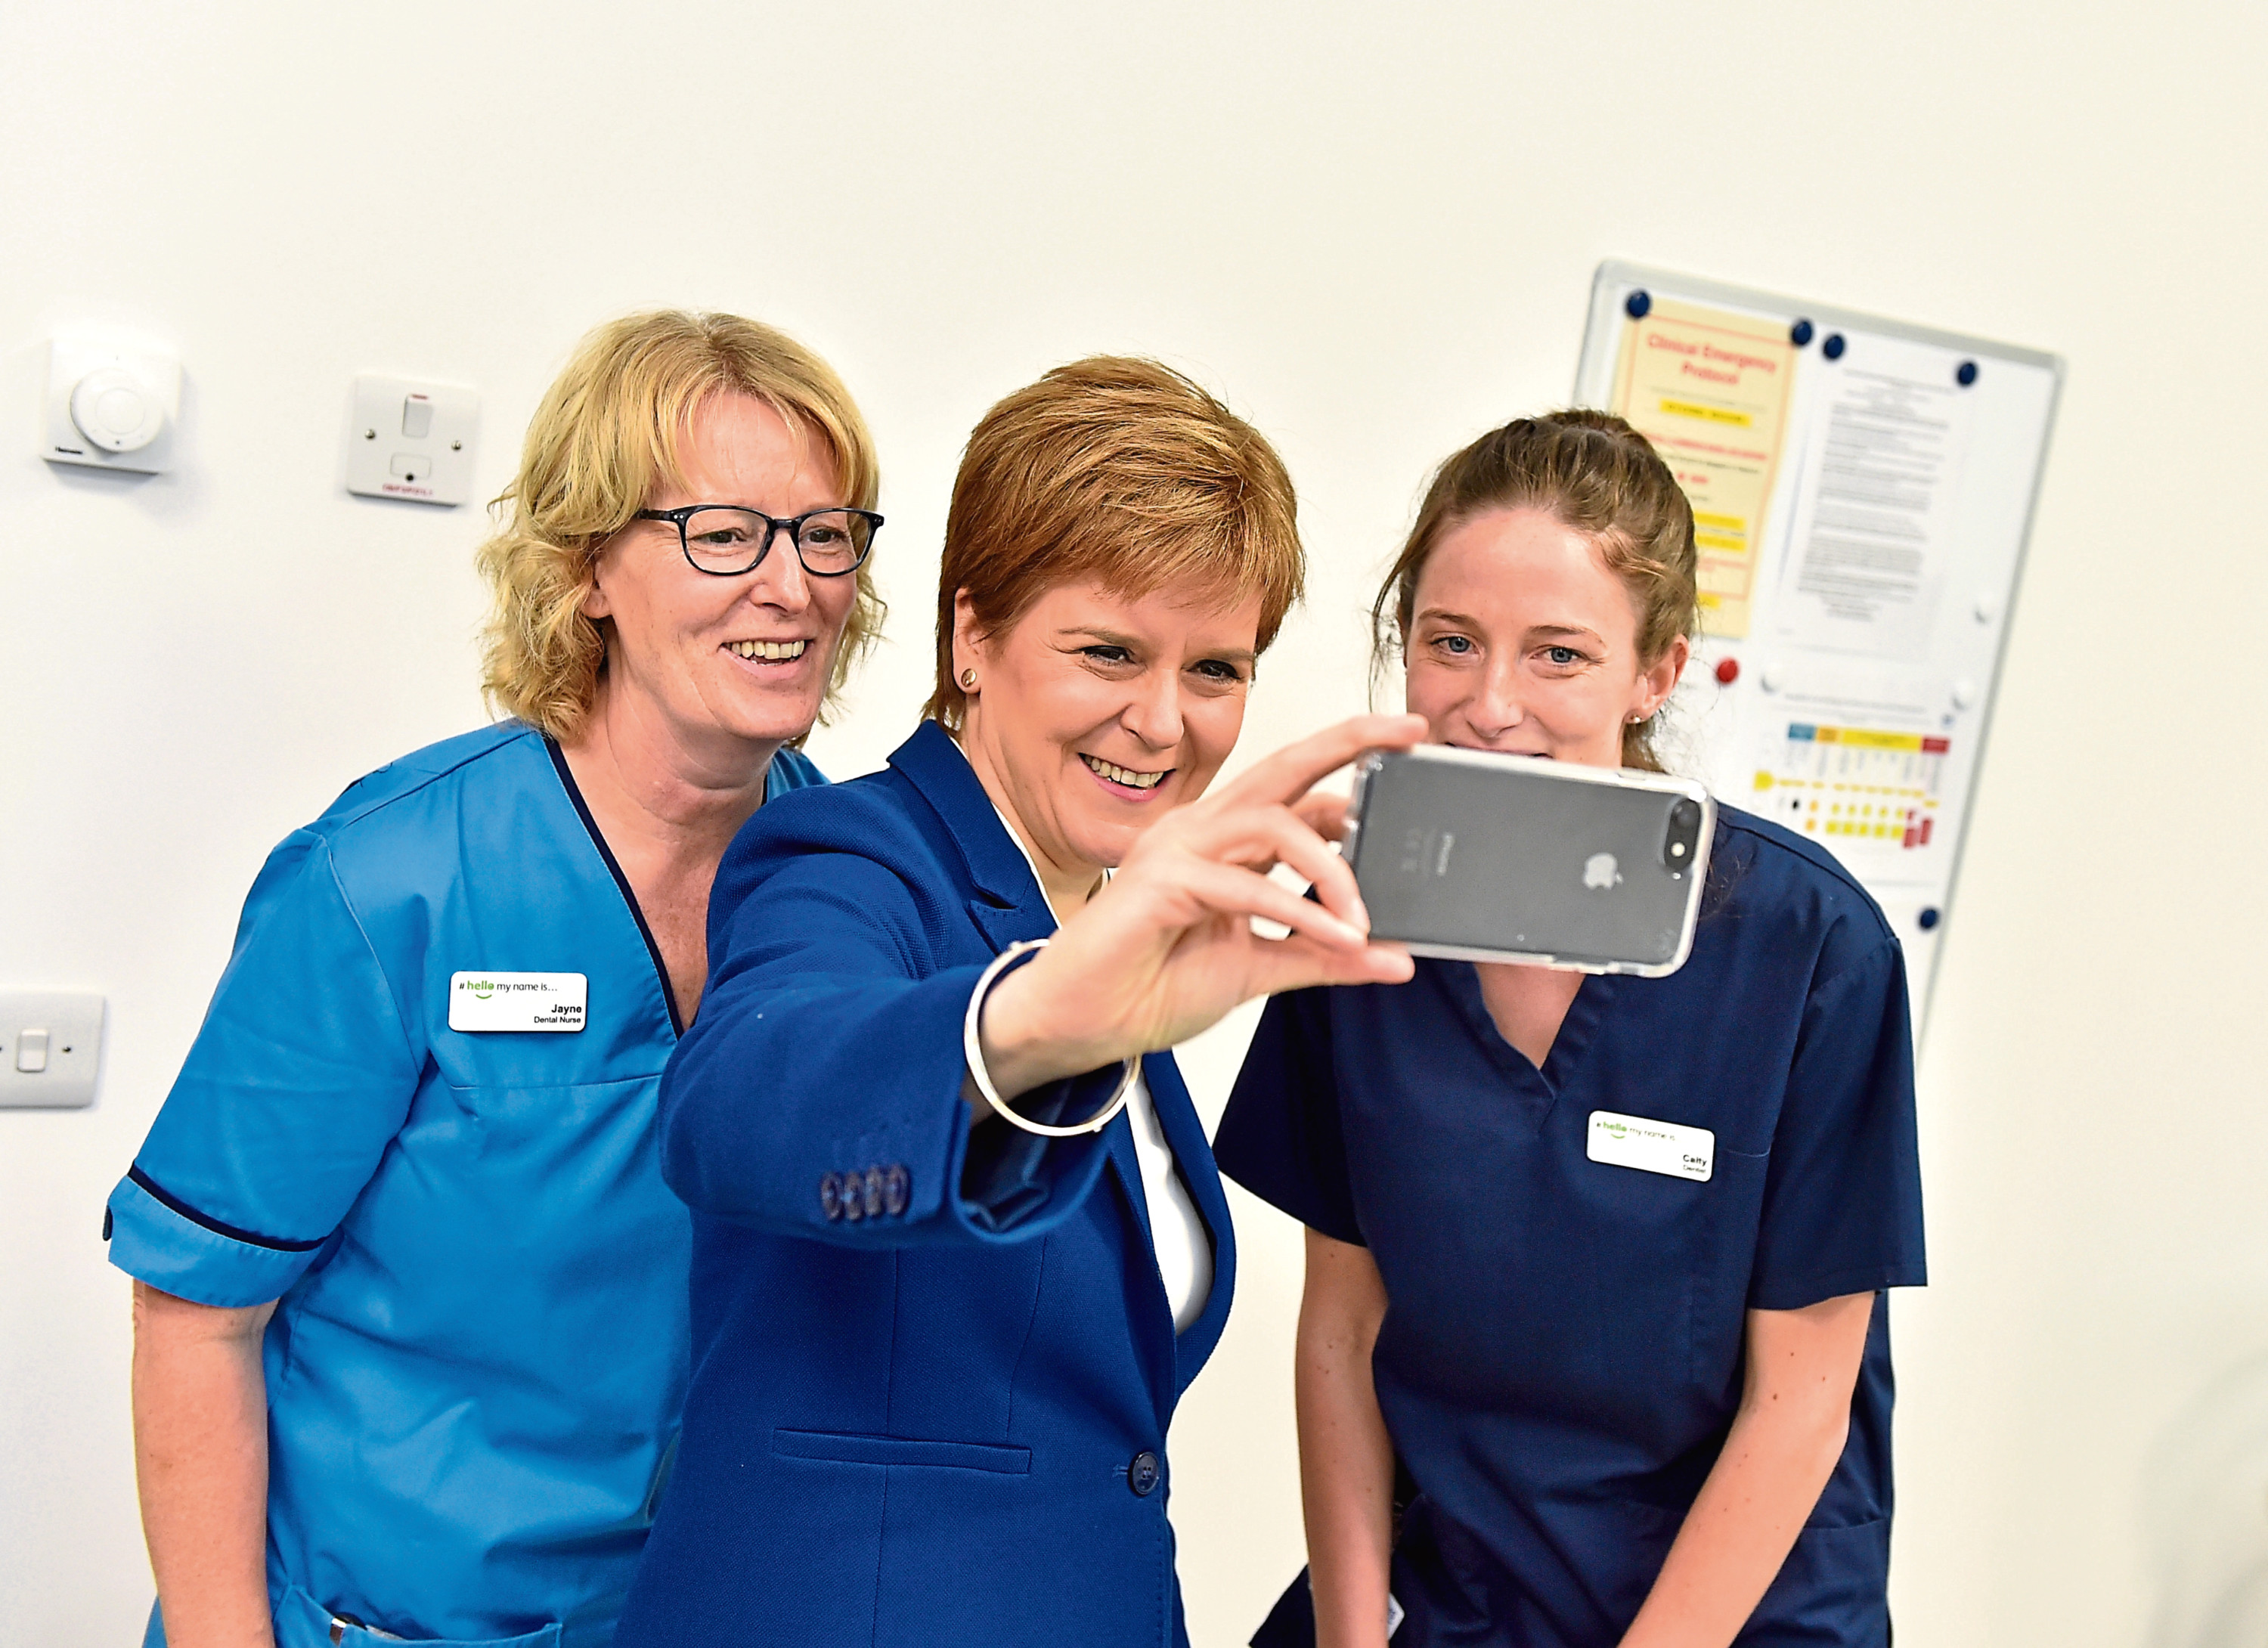 Nicola Sturgeon takes a selfie with staff at the hub. Picture by Scott Baxter